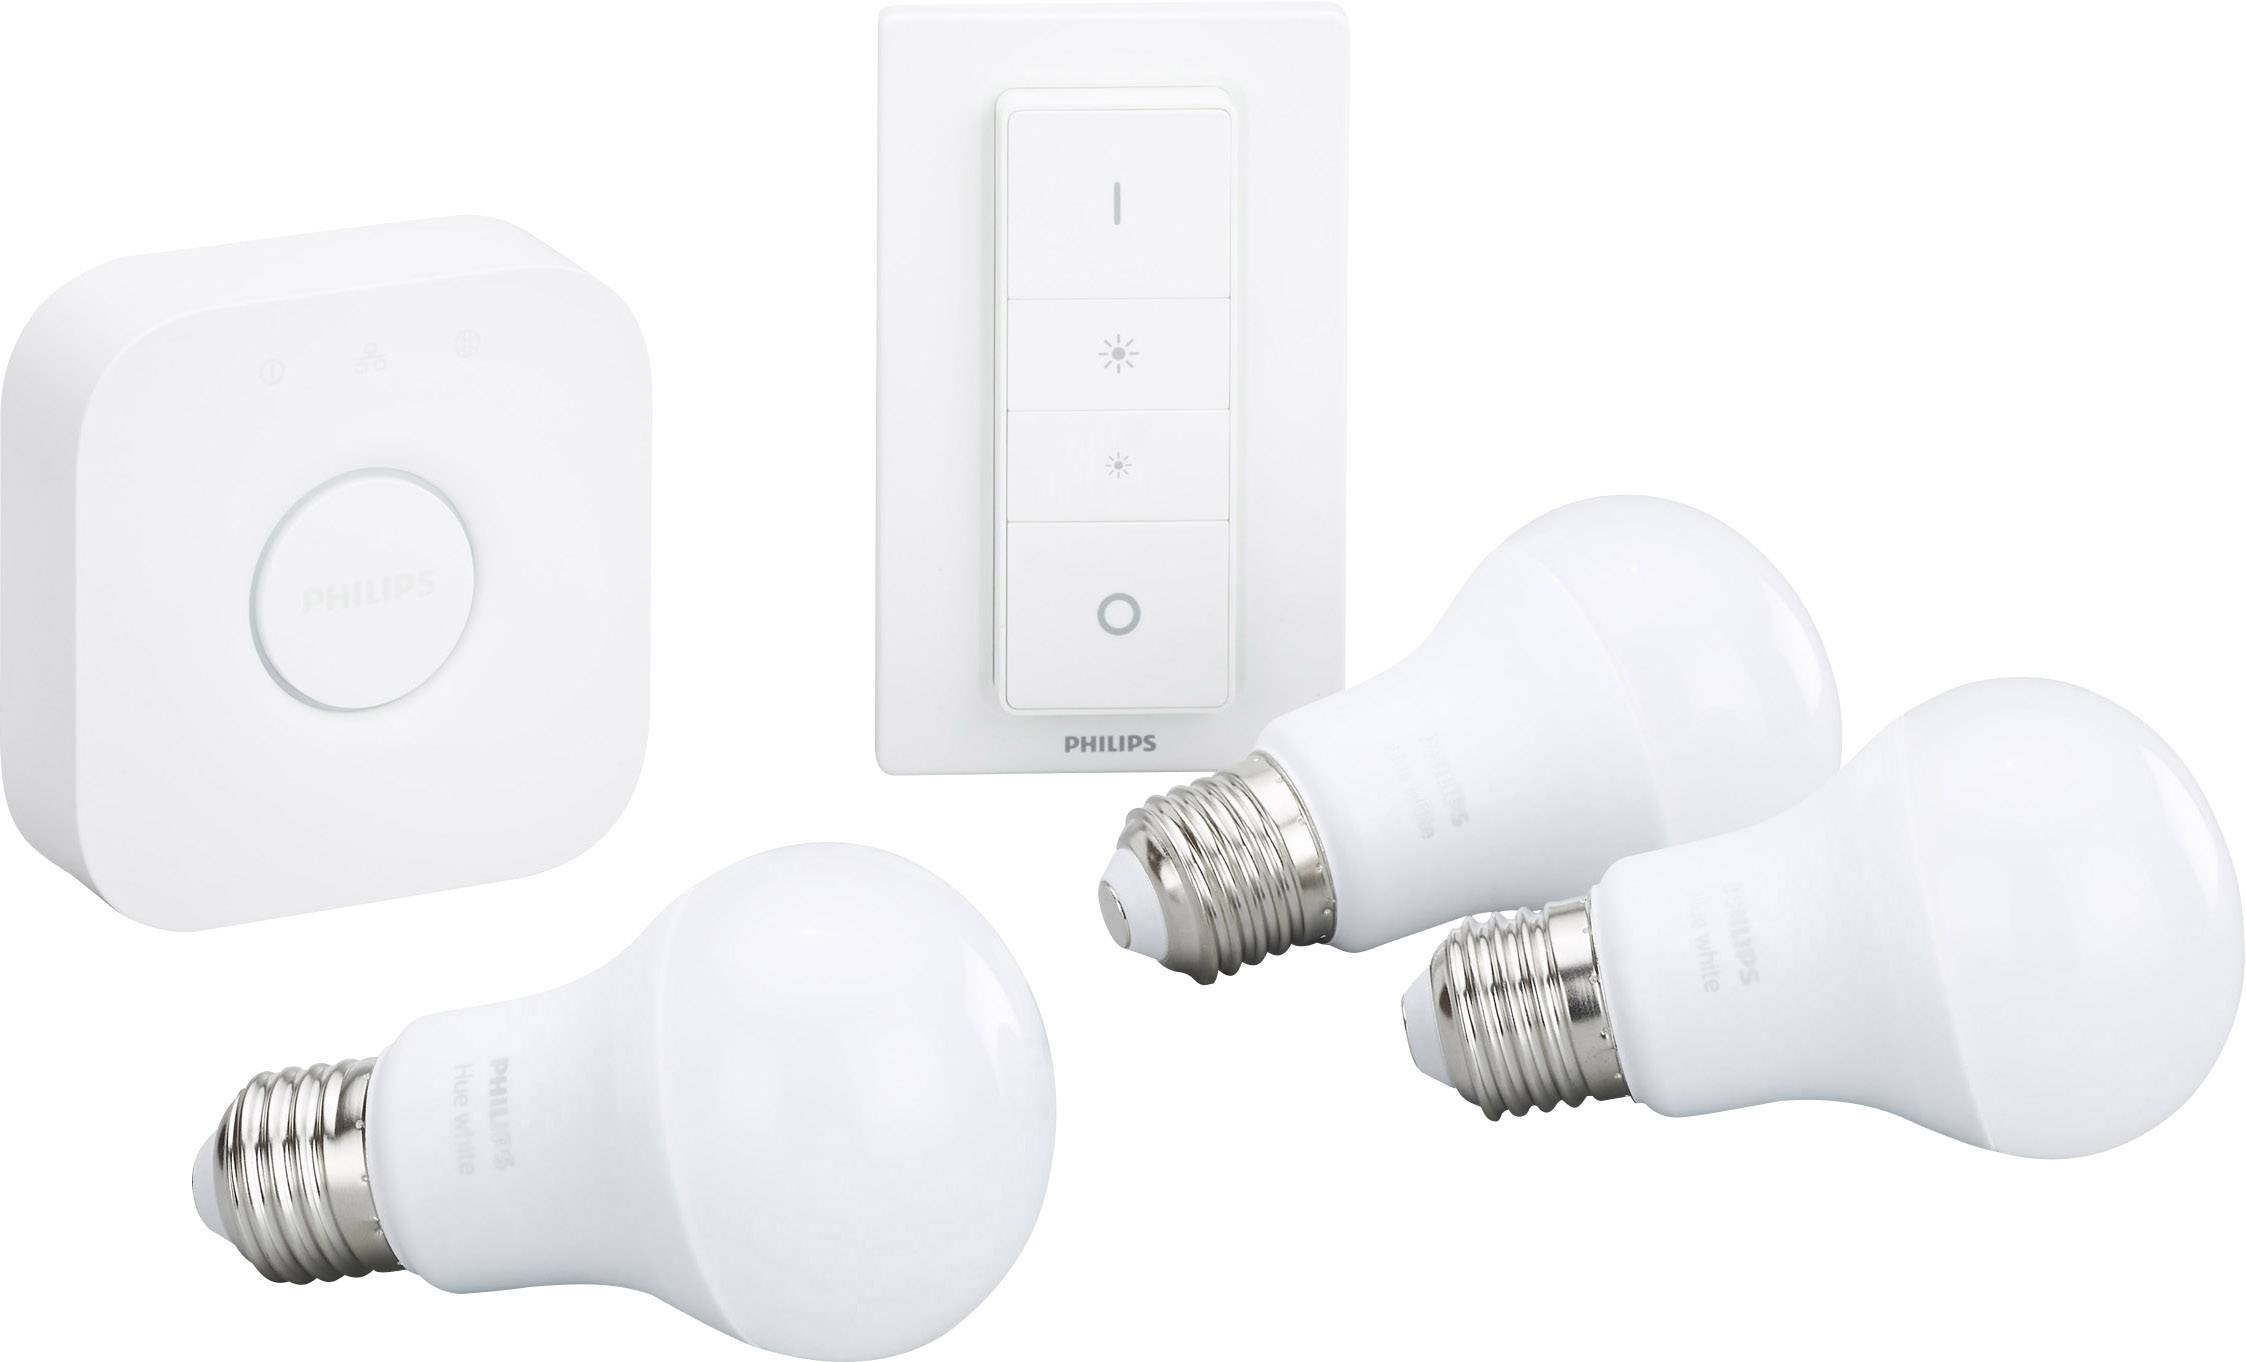 Stroomverbruik Hue Lampen : Philips lighting hue starterkit e27 9 w warm wit